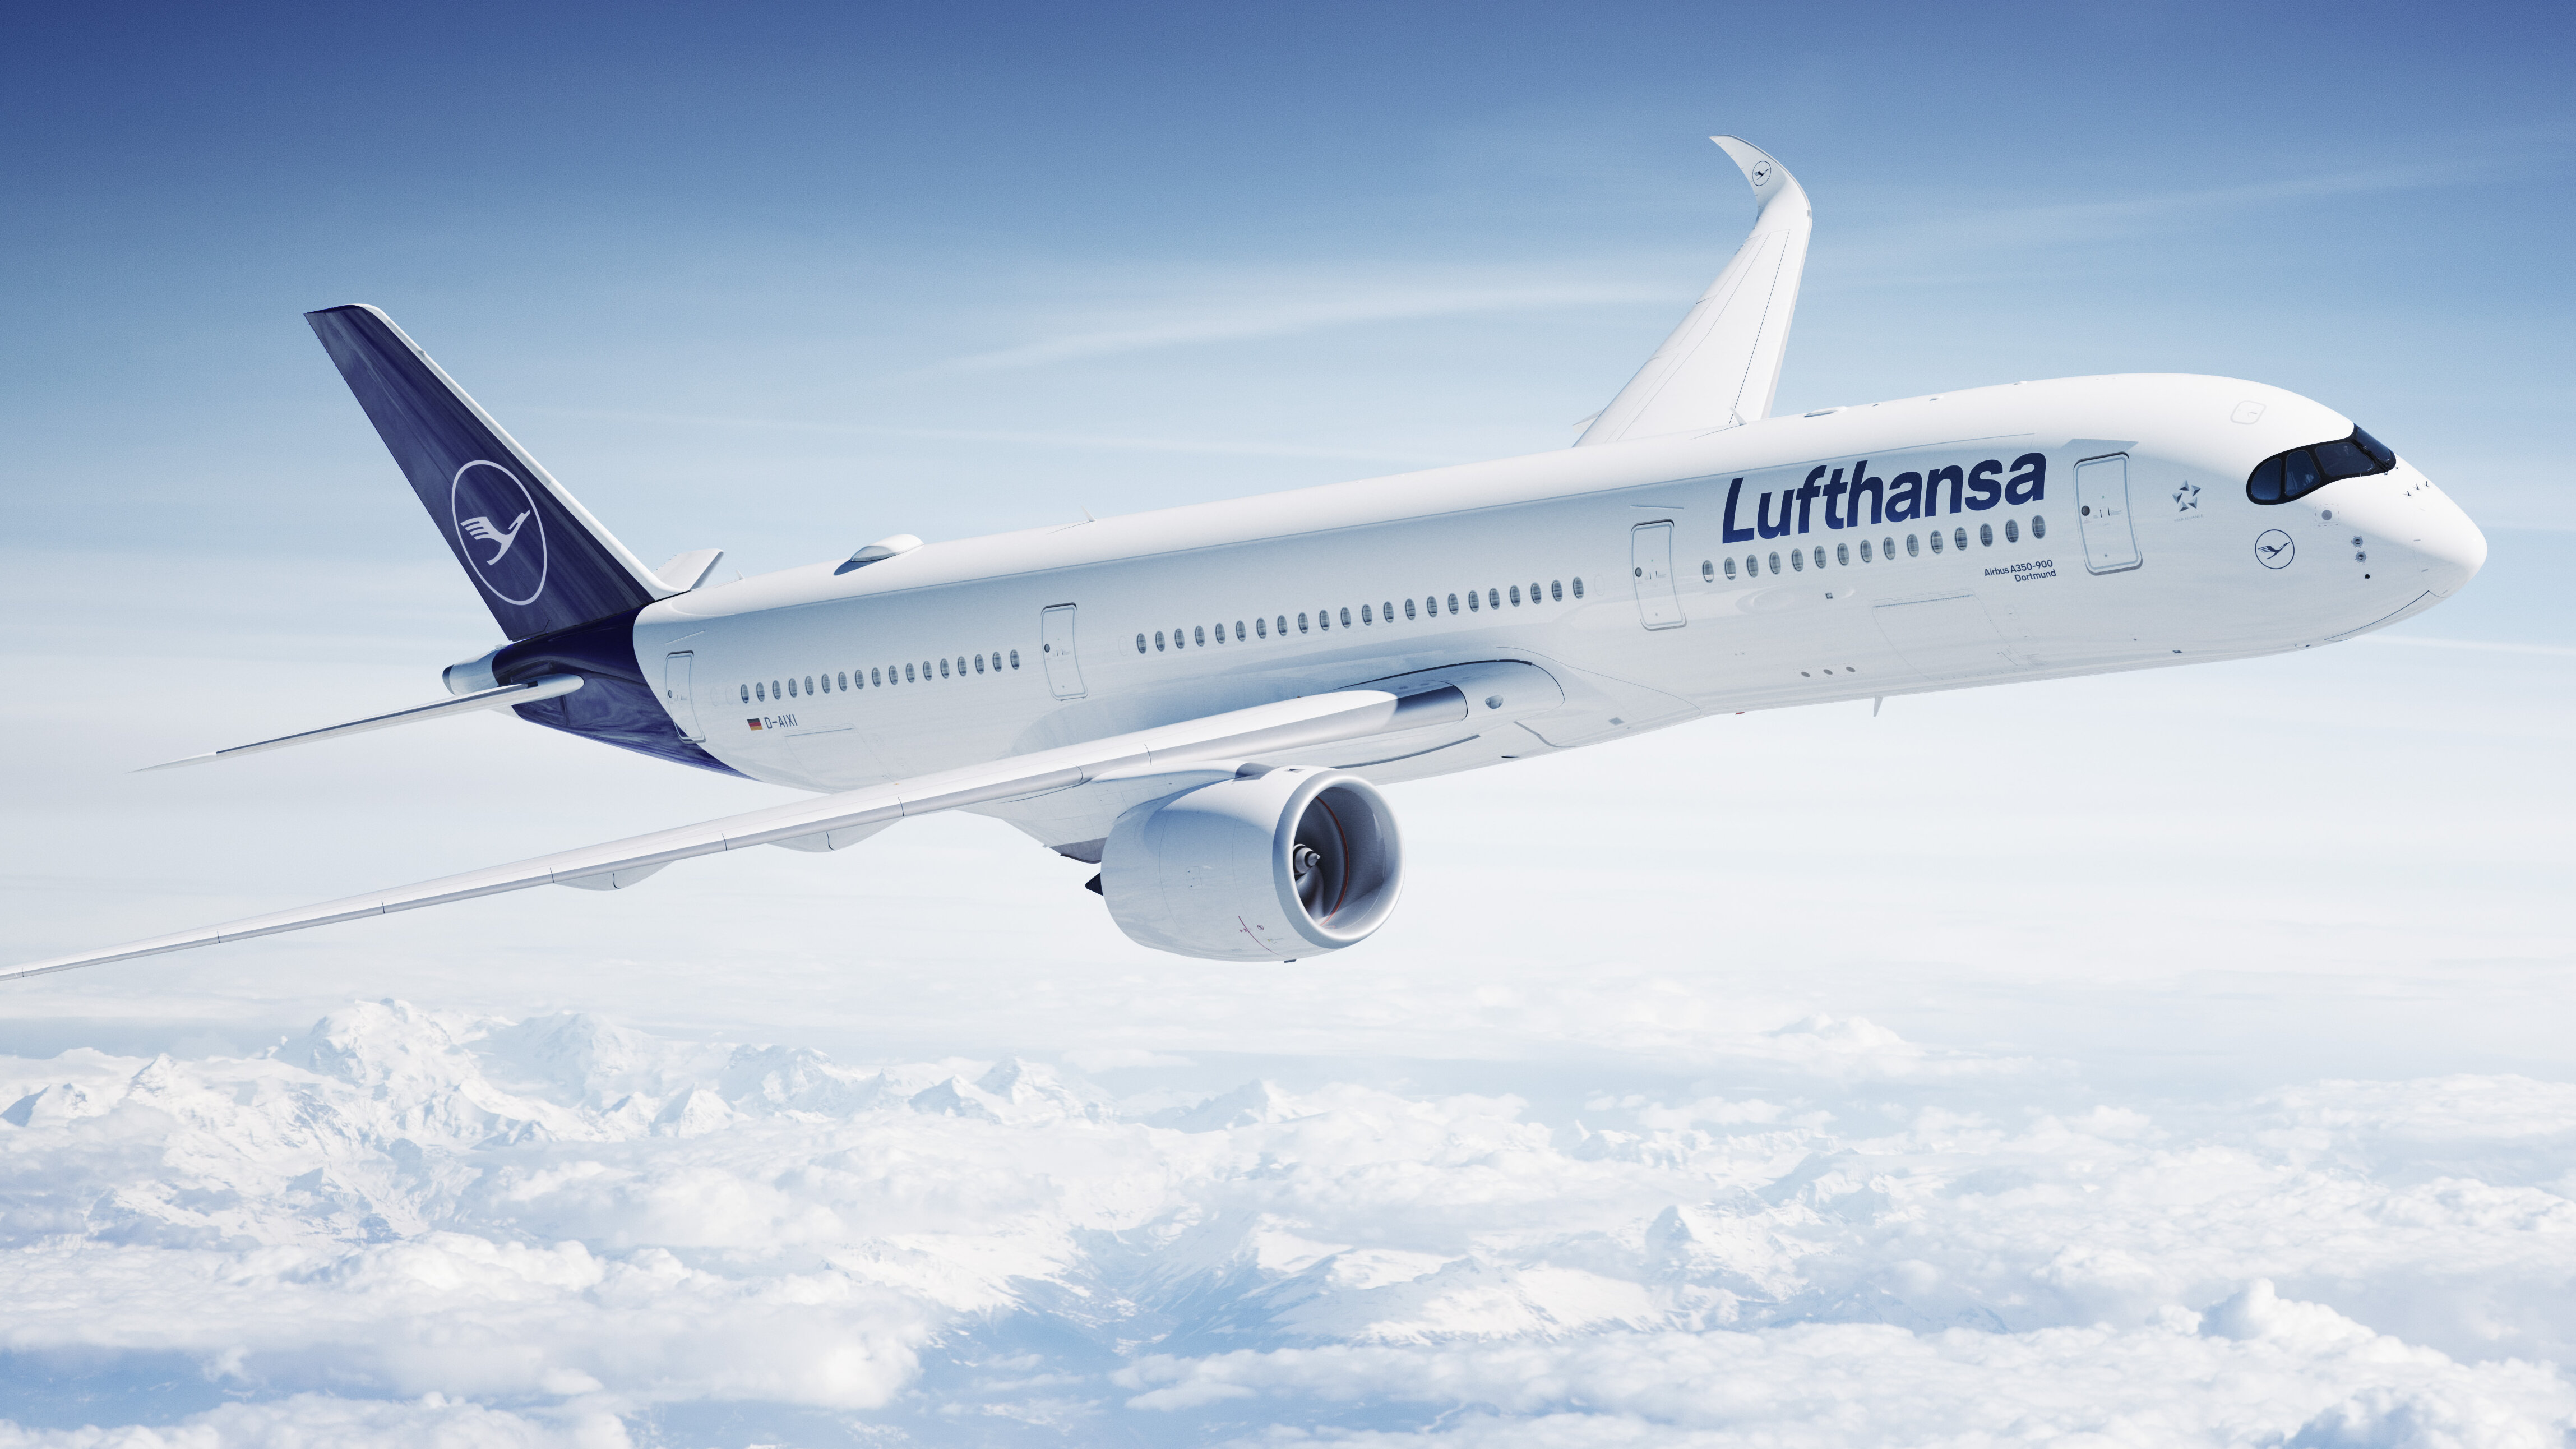 Lufthansa Group Orders 40 State Of The Art Boeing 787 9 And Airbus A350 900 Long Haul Aircraft Lufthansa Group